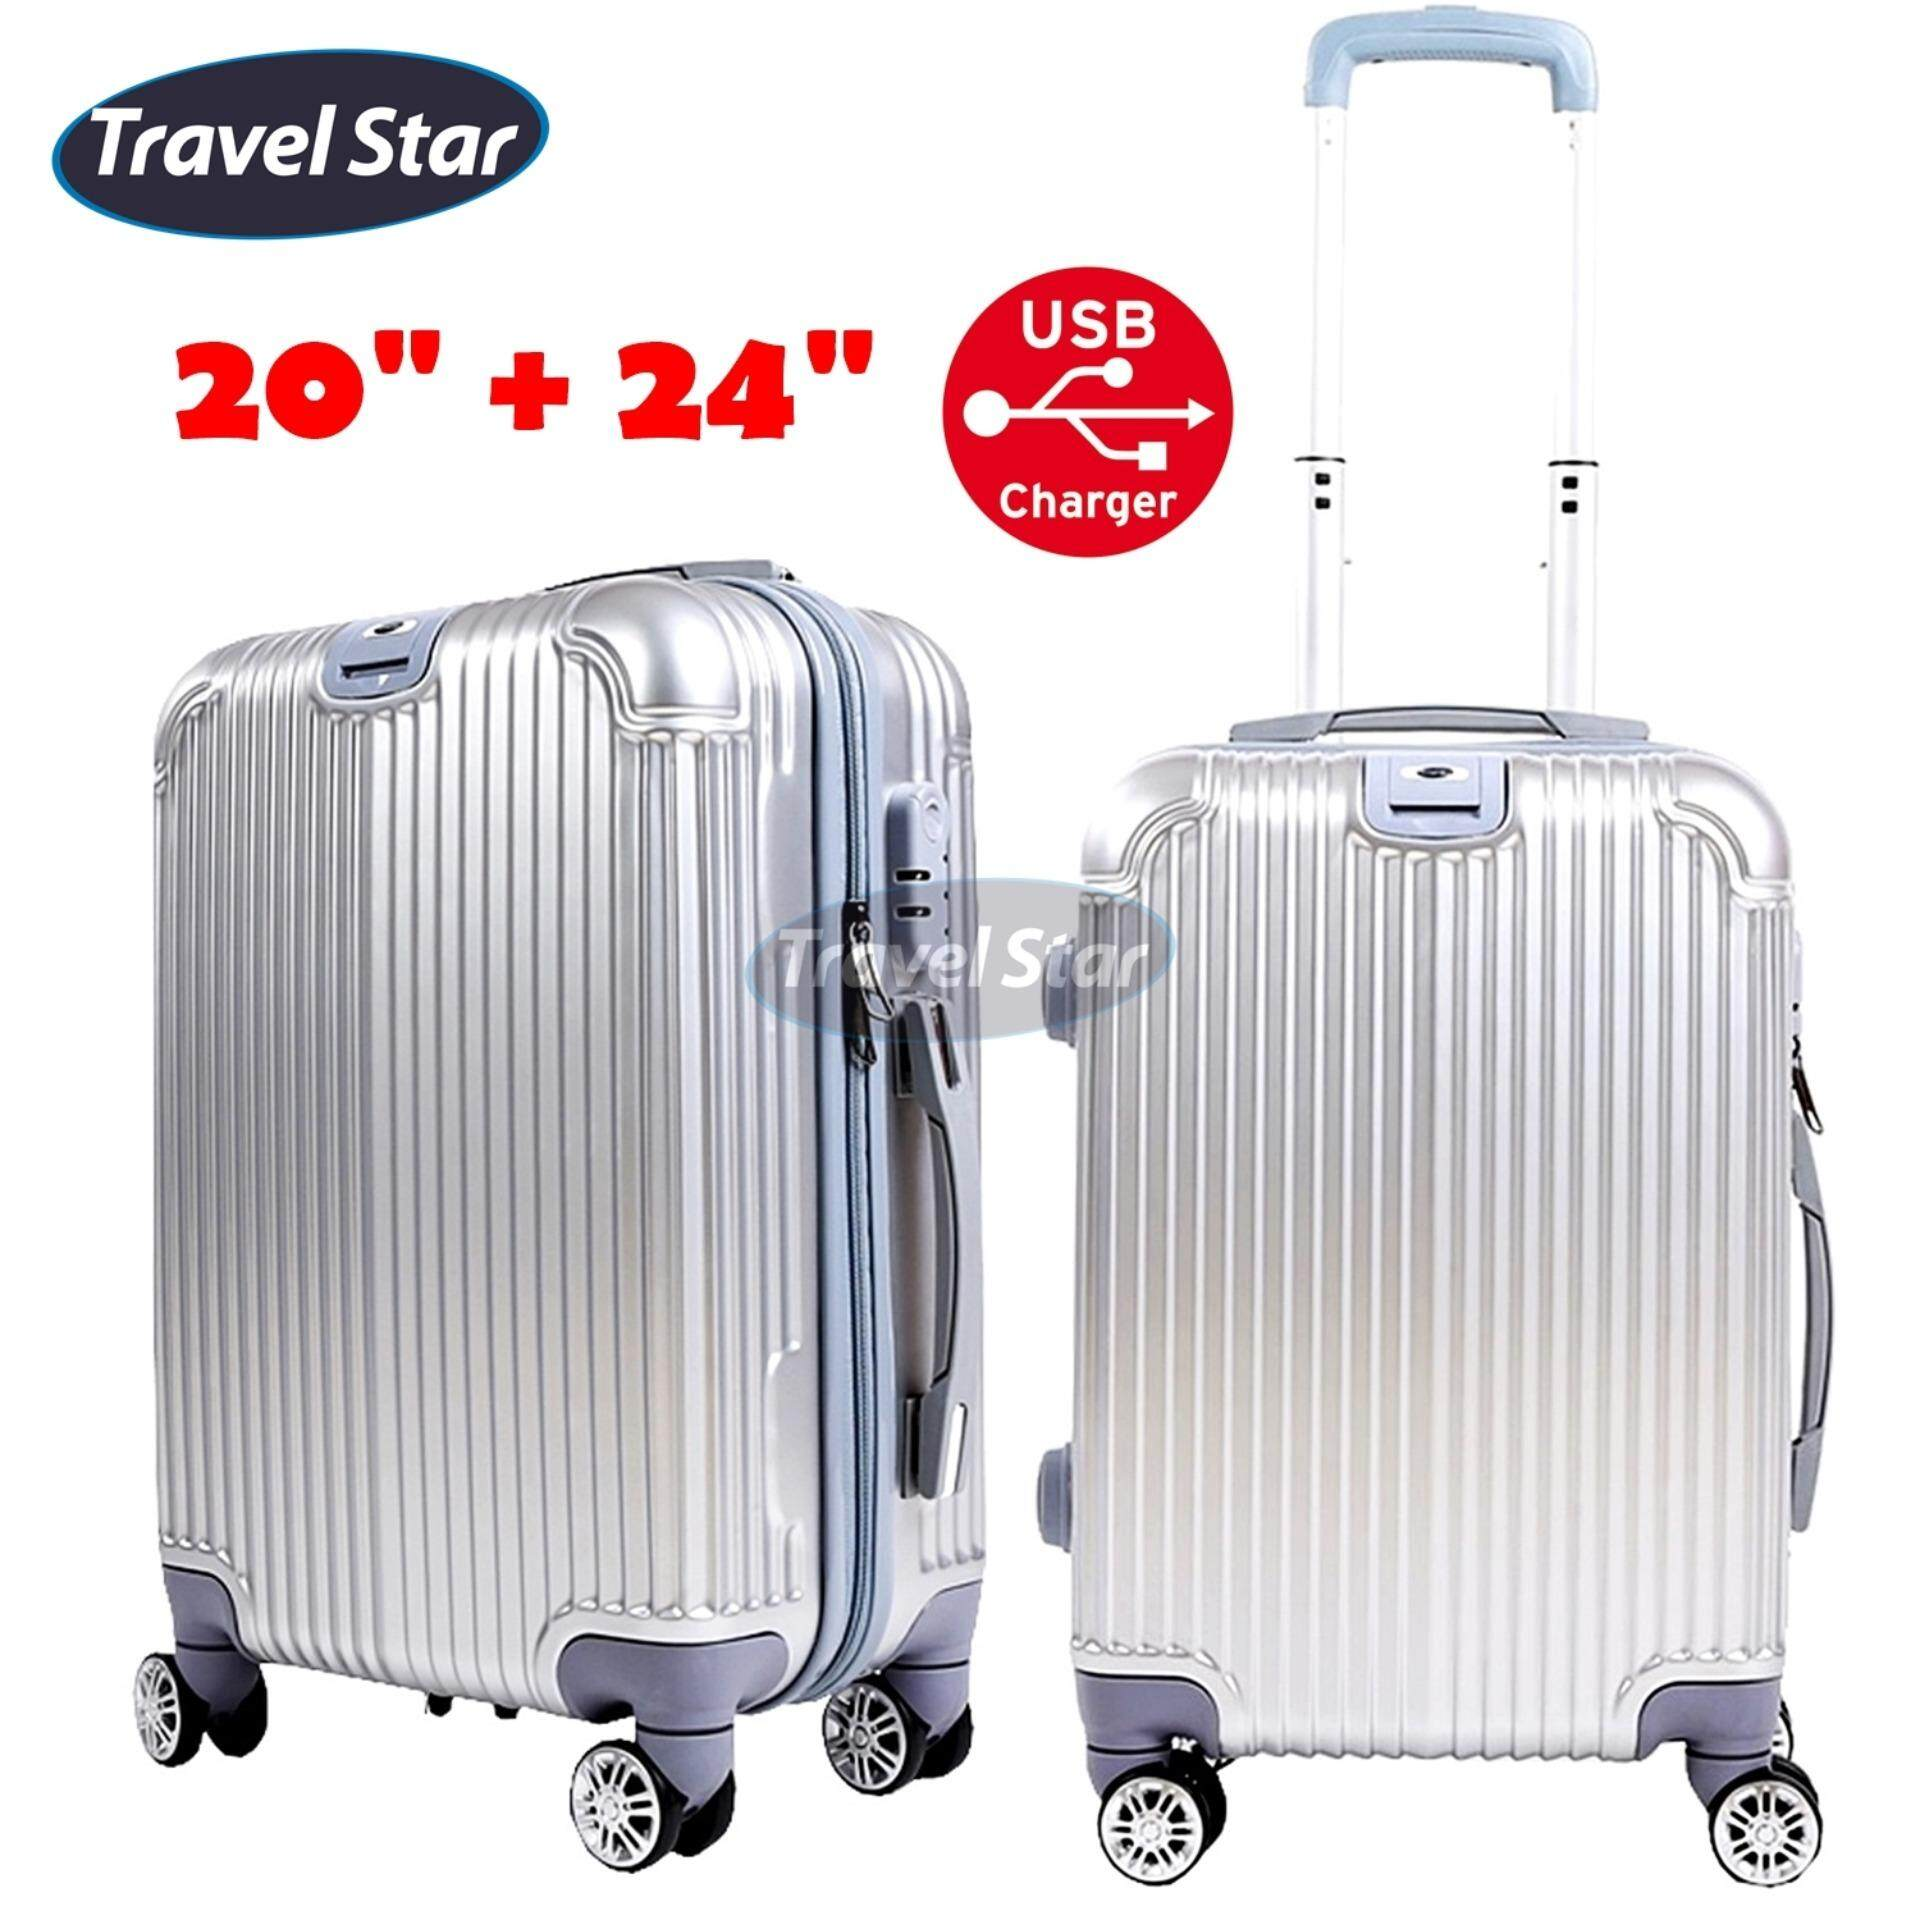 TRAVEL STAR QZ002 Elegant 20 Inch + 24 Inch Hard Case Luggage Bagasi Sets With External Charging Port- Silver